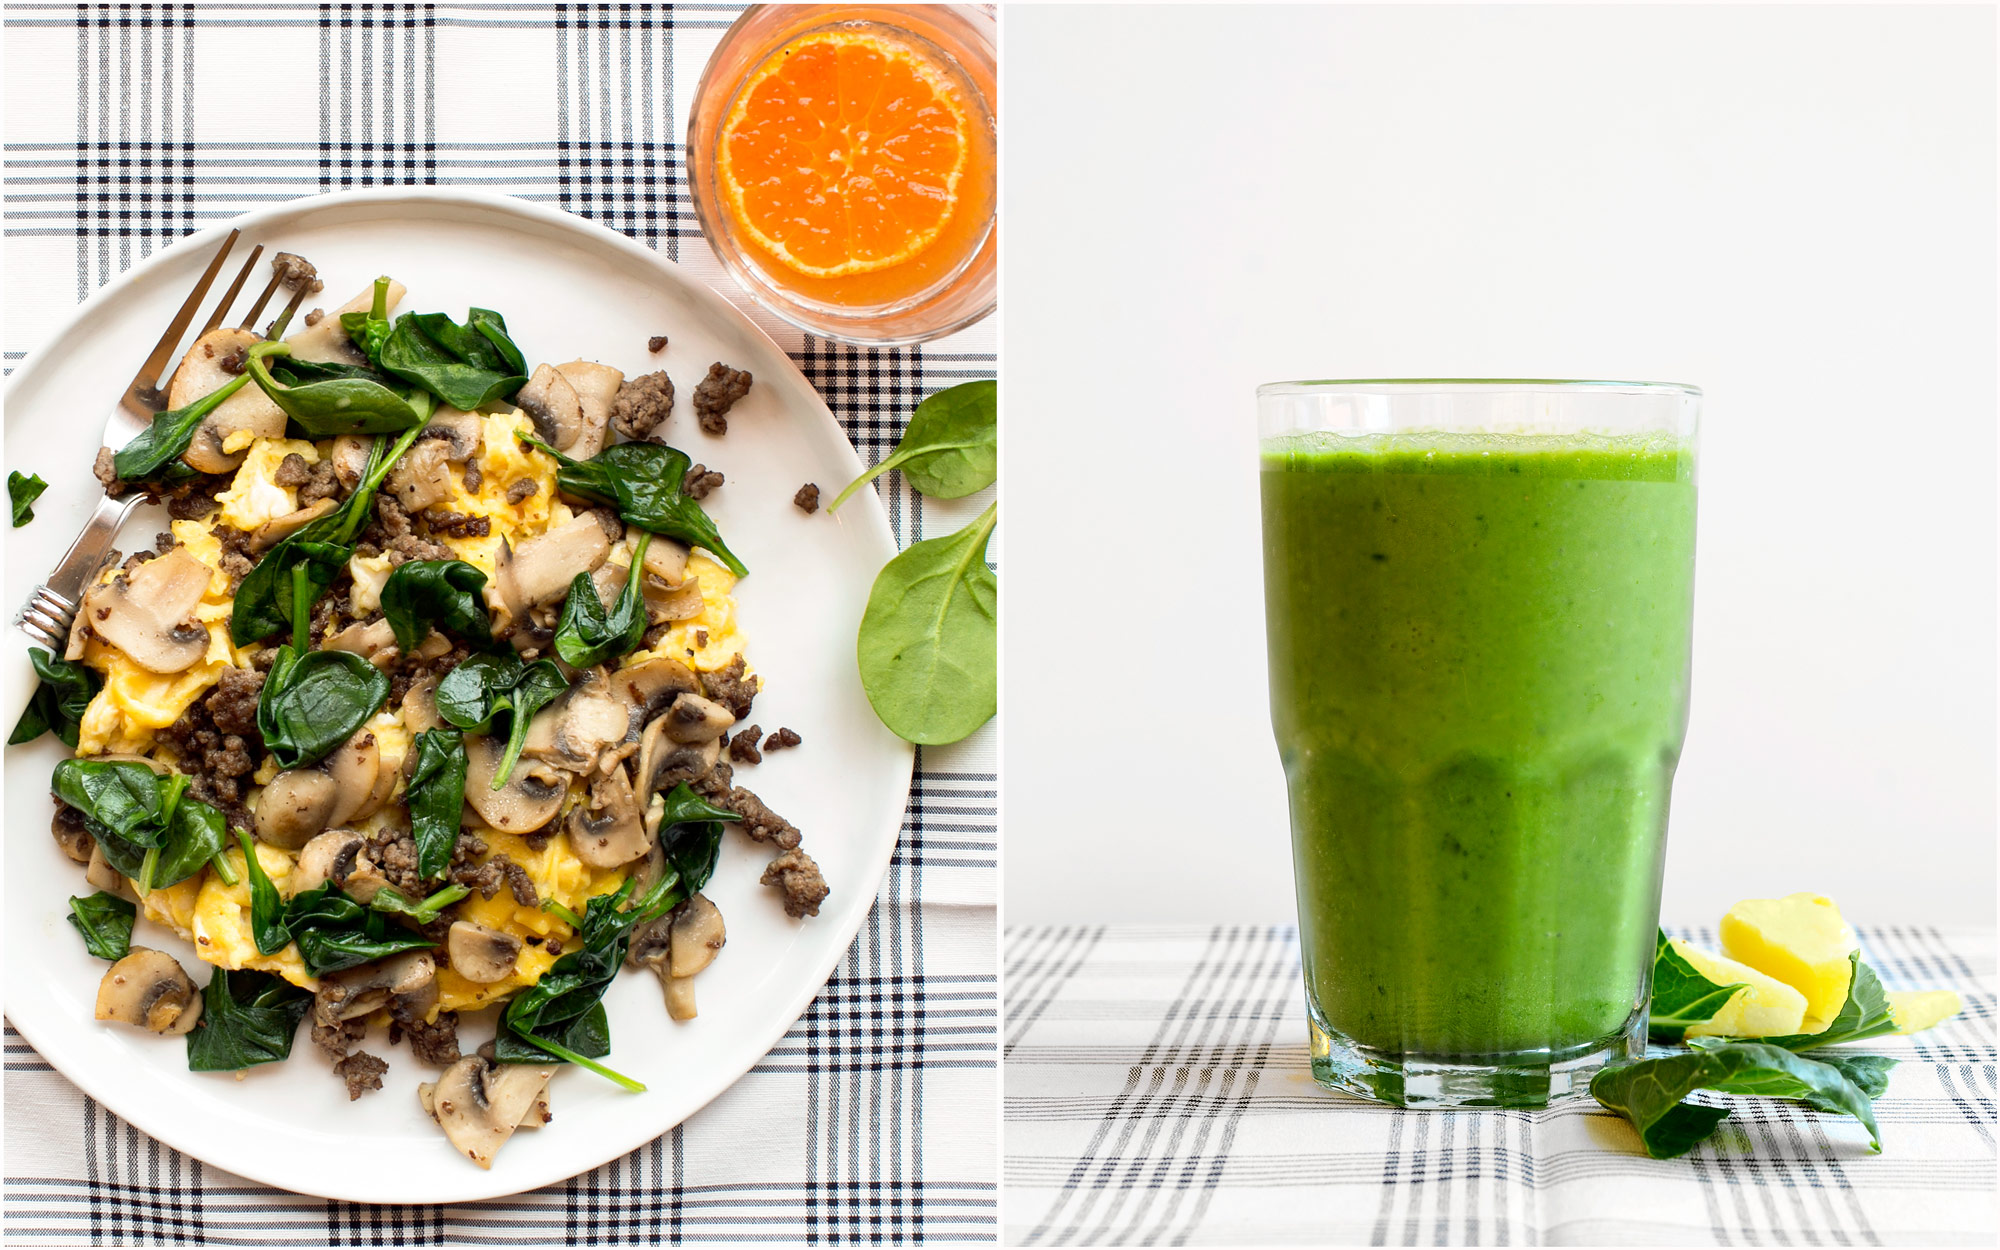 Two Breakfasts: Joe's special & Collard green - pineapple smoothie